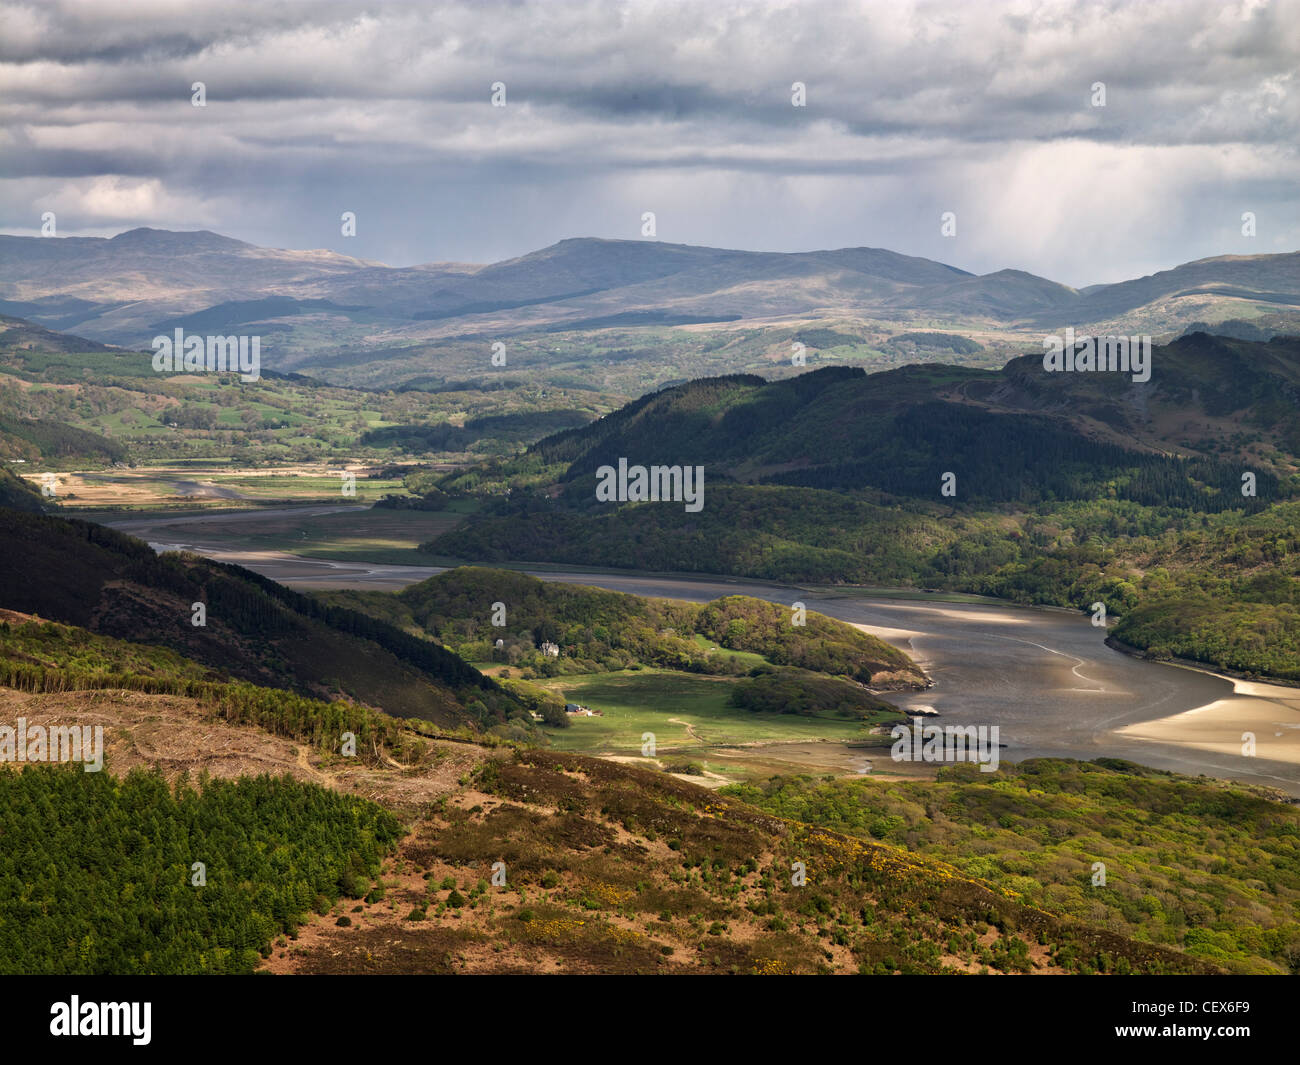 A spectacular view along the Mawddach Estuary from one of the many footpaths in the hills above Barmouth. - Stock Image